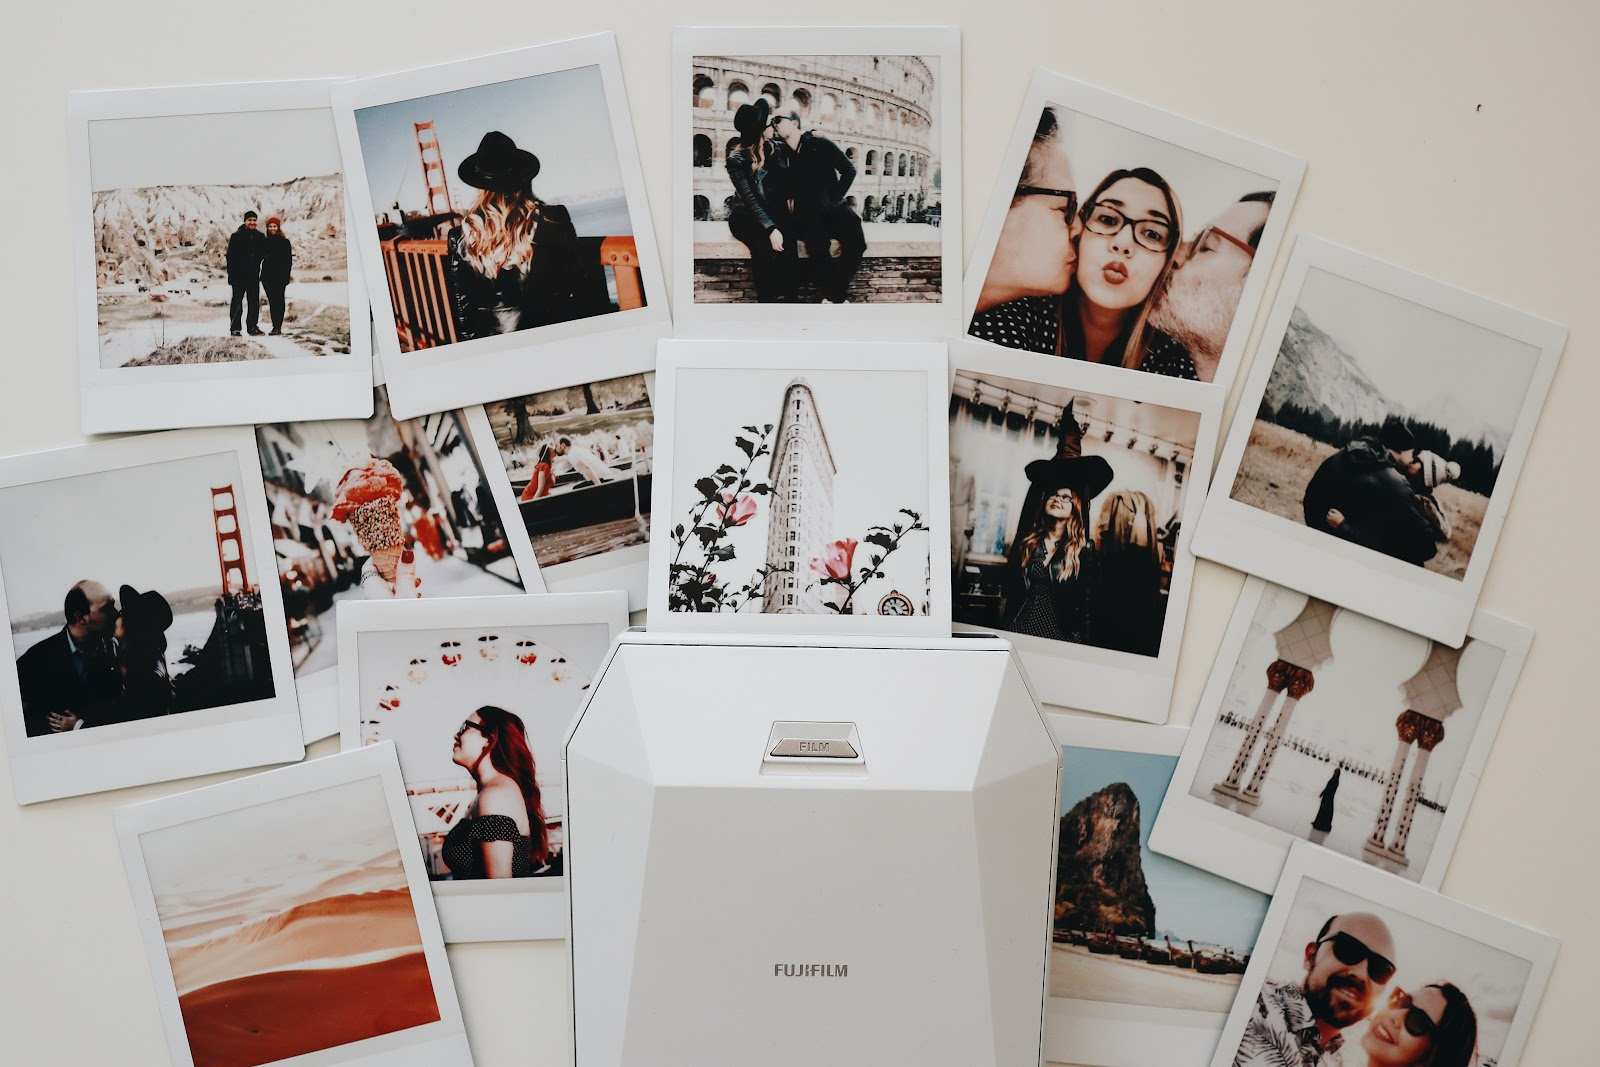 Polaroid memories with your Valentine.